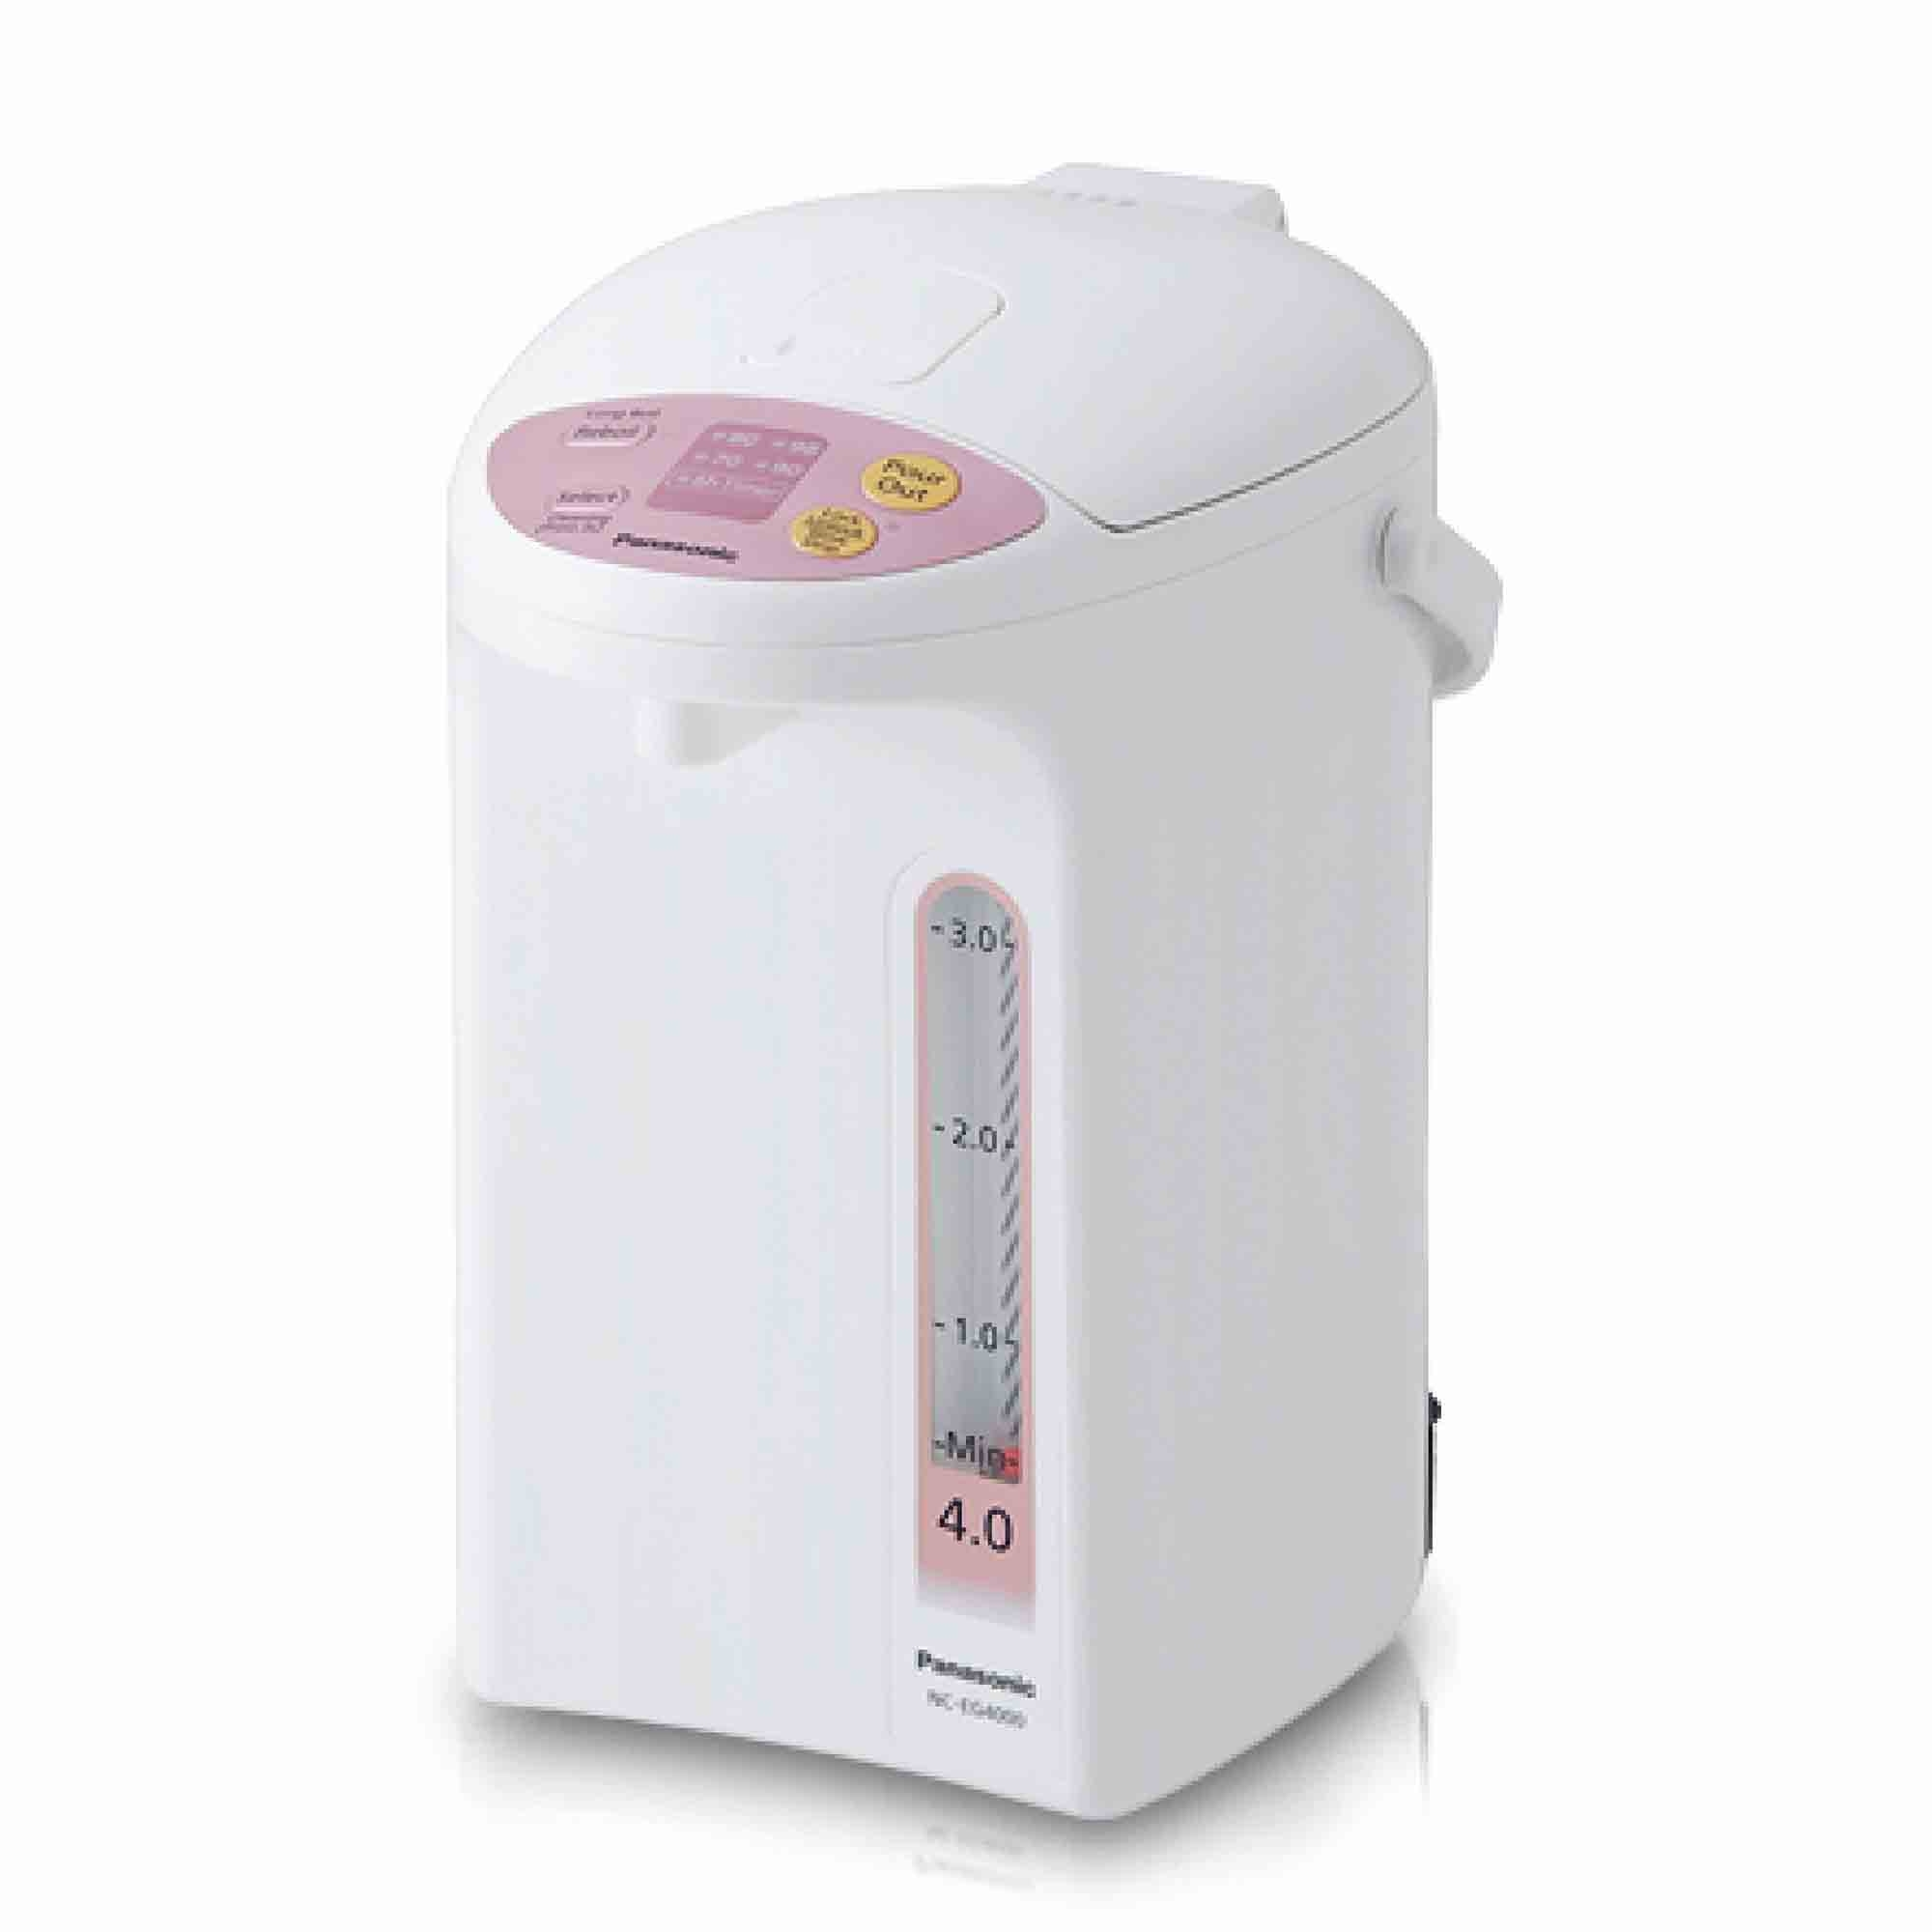 Mentioning thermopot reviews are only positive